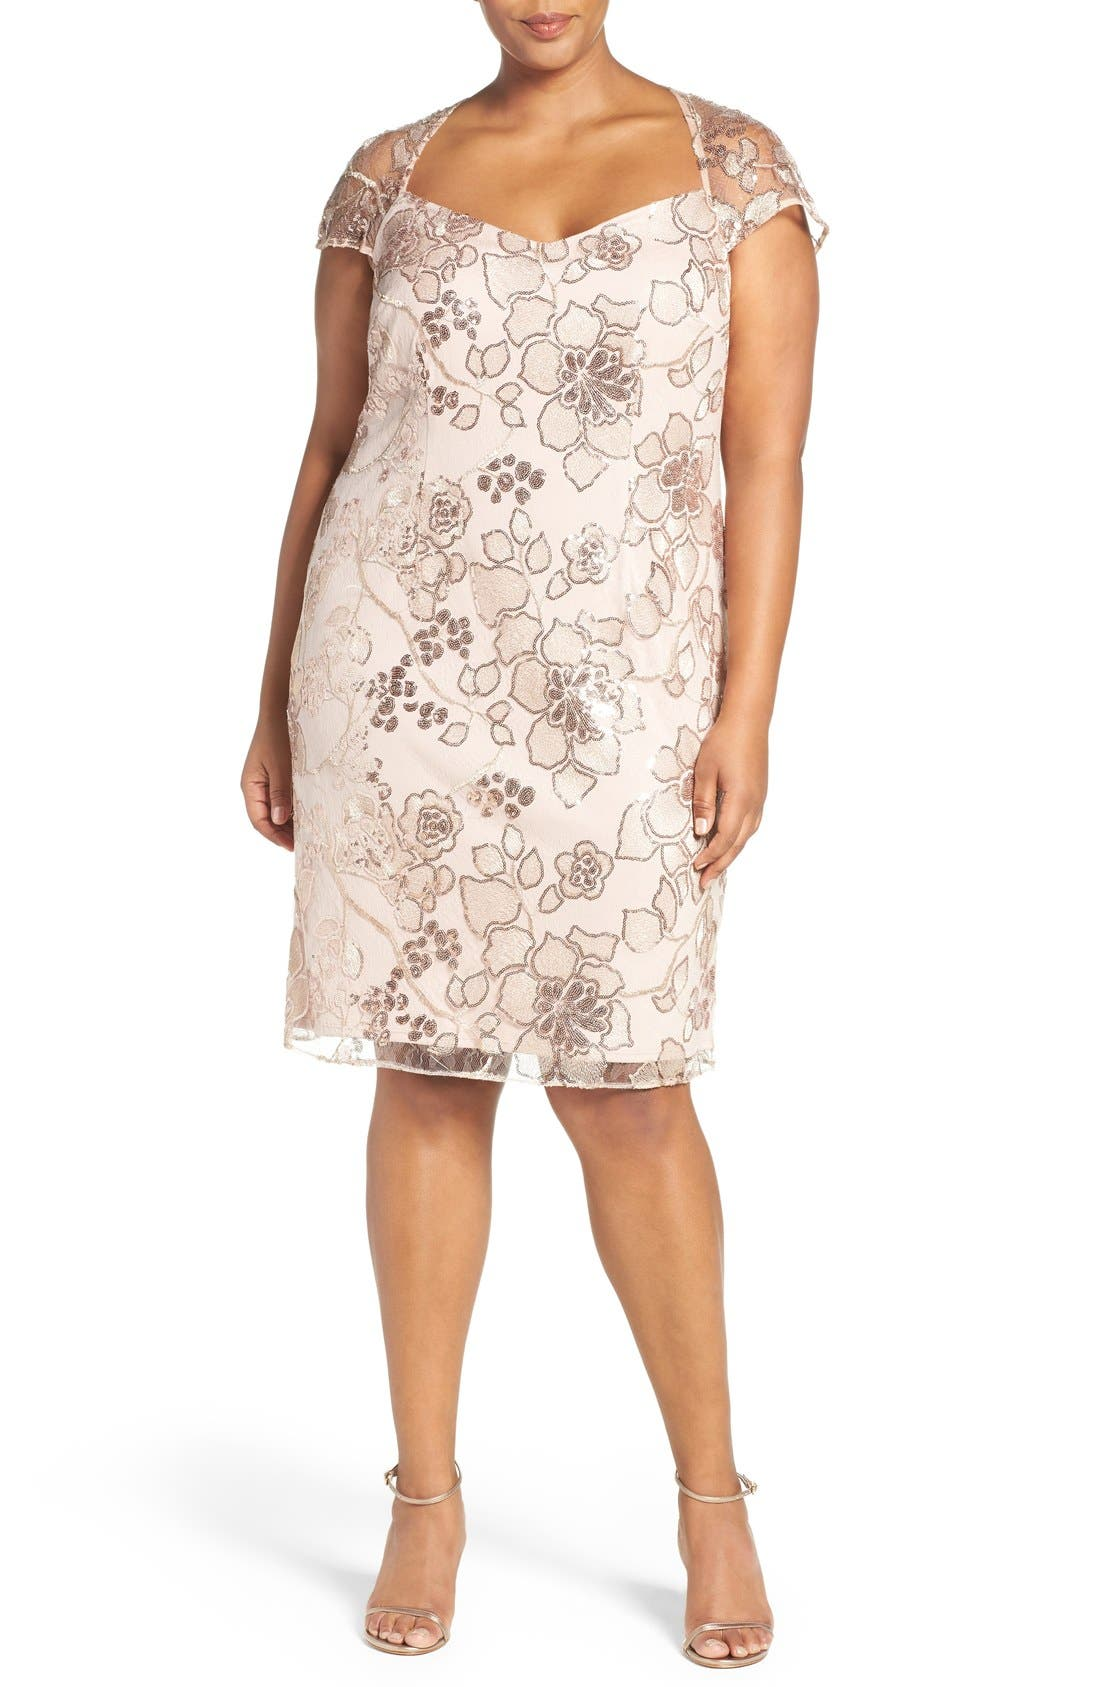 Embellished Embroidered Lace Cocktail Dress,                             Main thumbnail 1, color,                             Almond